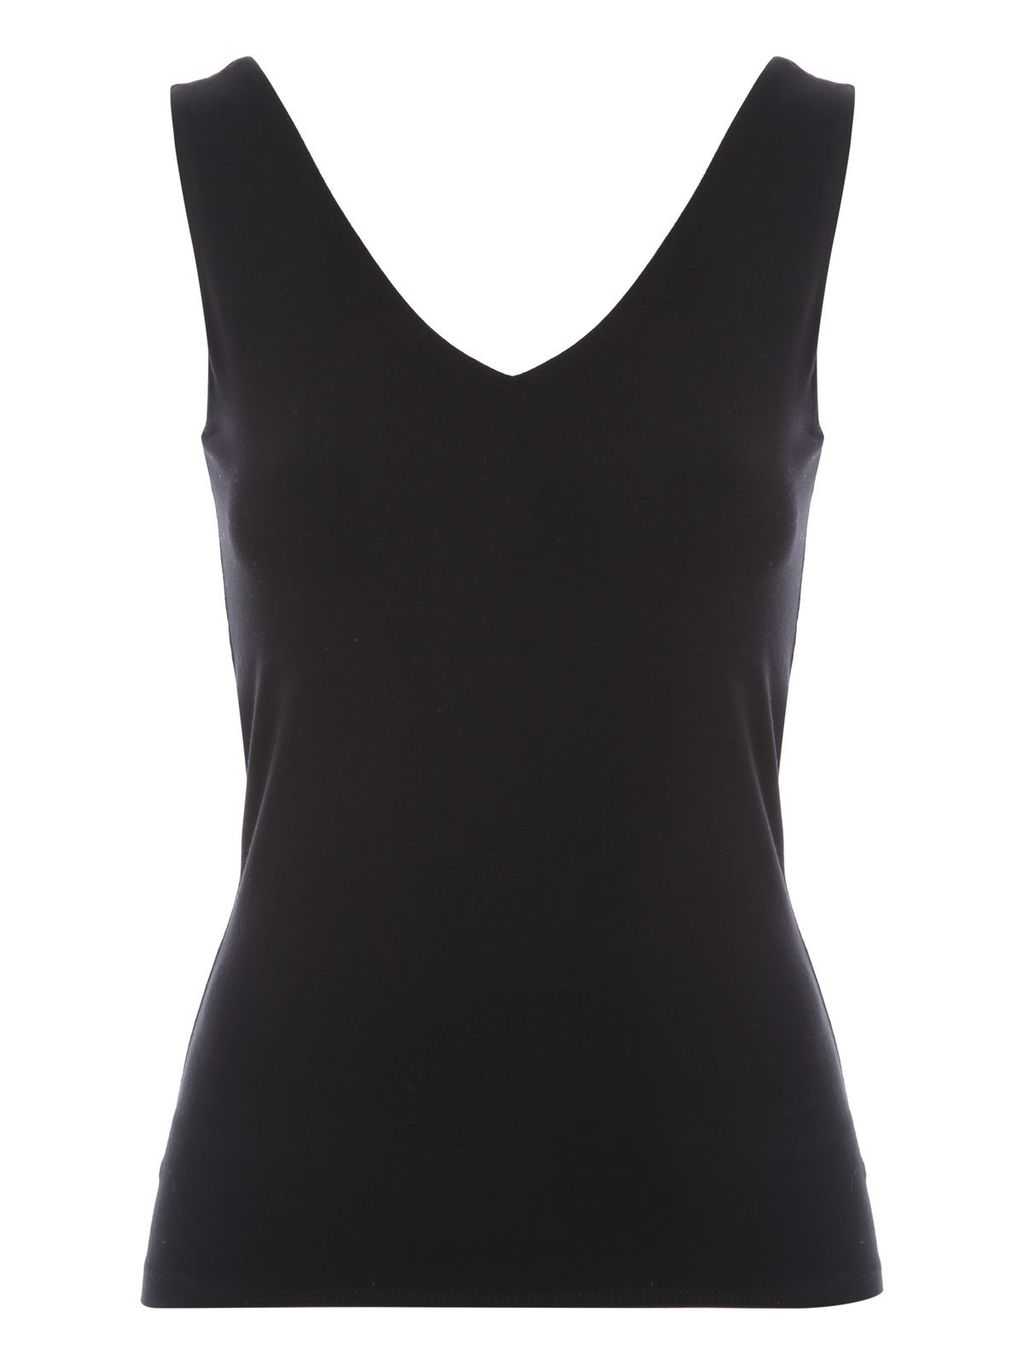 Essential Bust Shelf Reversible Vest, Black - neckline: v-neck; pattern: plain; sleeve style: sleeveless; style: vest top; predominant colour: black; occasions: casual; length: standard; fibres: viscose/rayon - stretch; fit: tight; sleeve length: sleeveless; texture group: jersey - clingy; pattern type: fabric; season: s/s 2016; wardrobe: basic